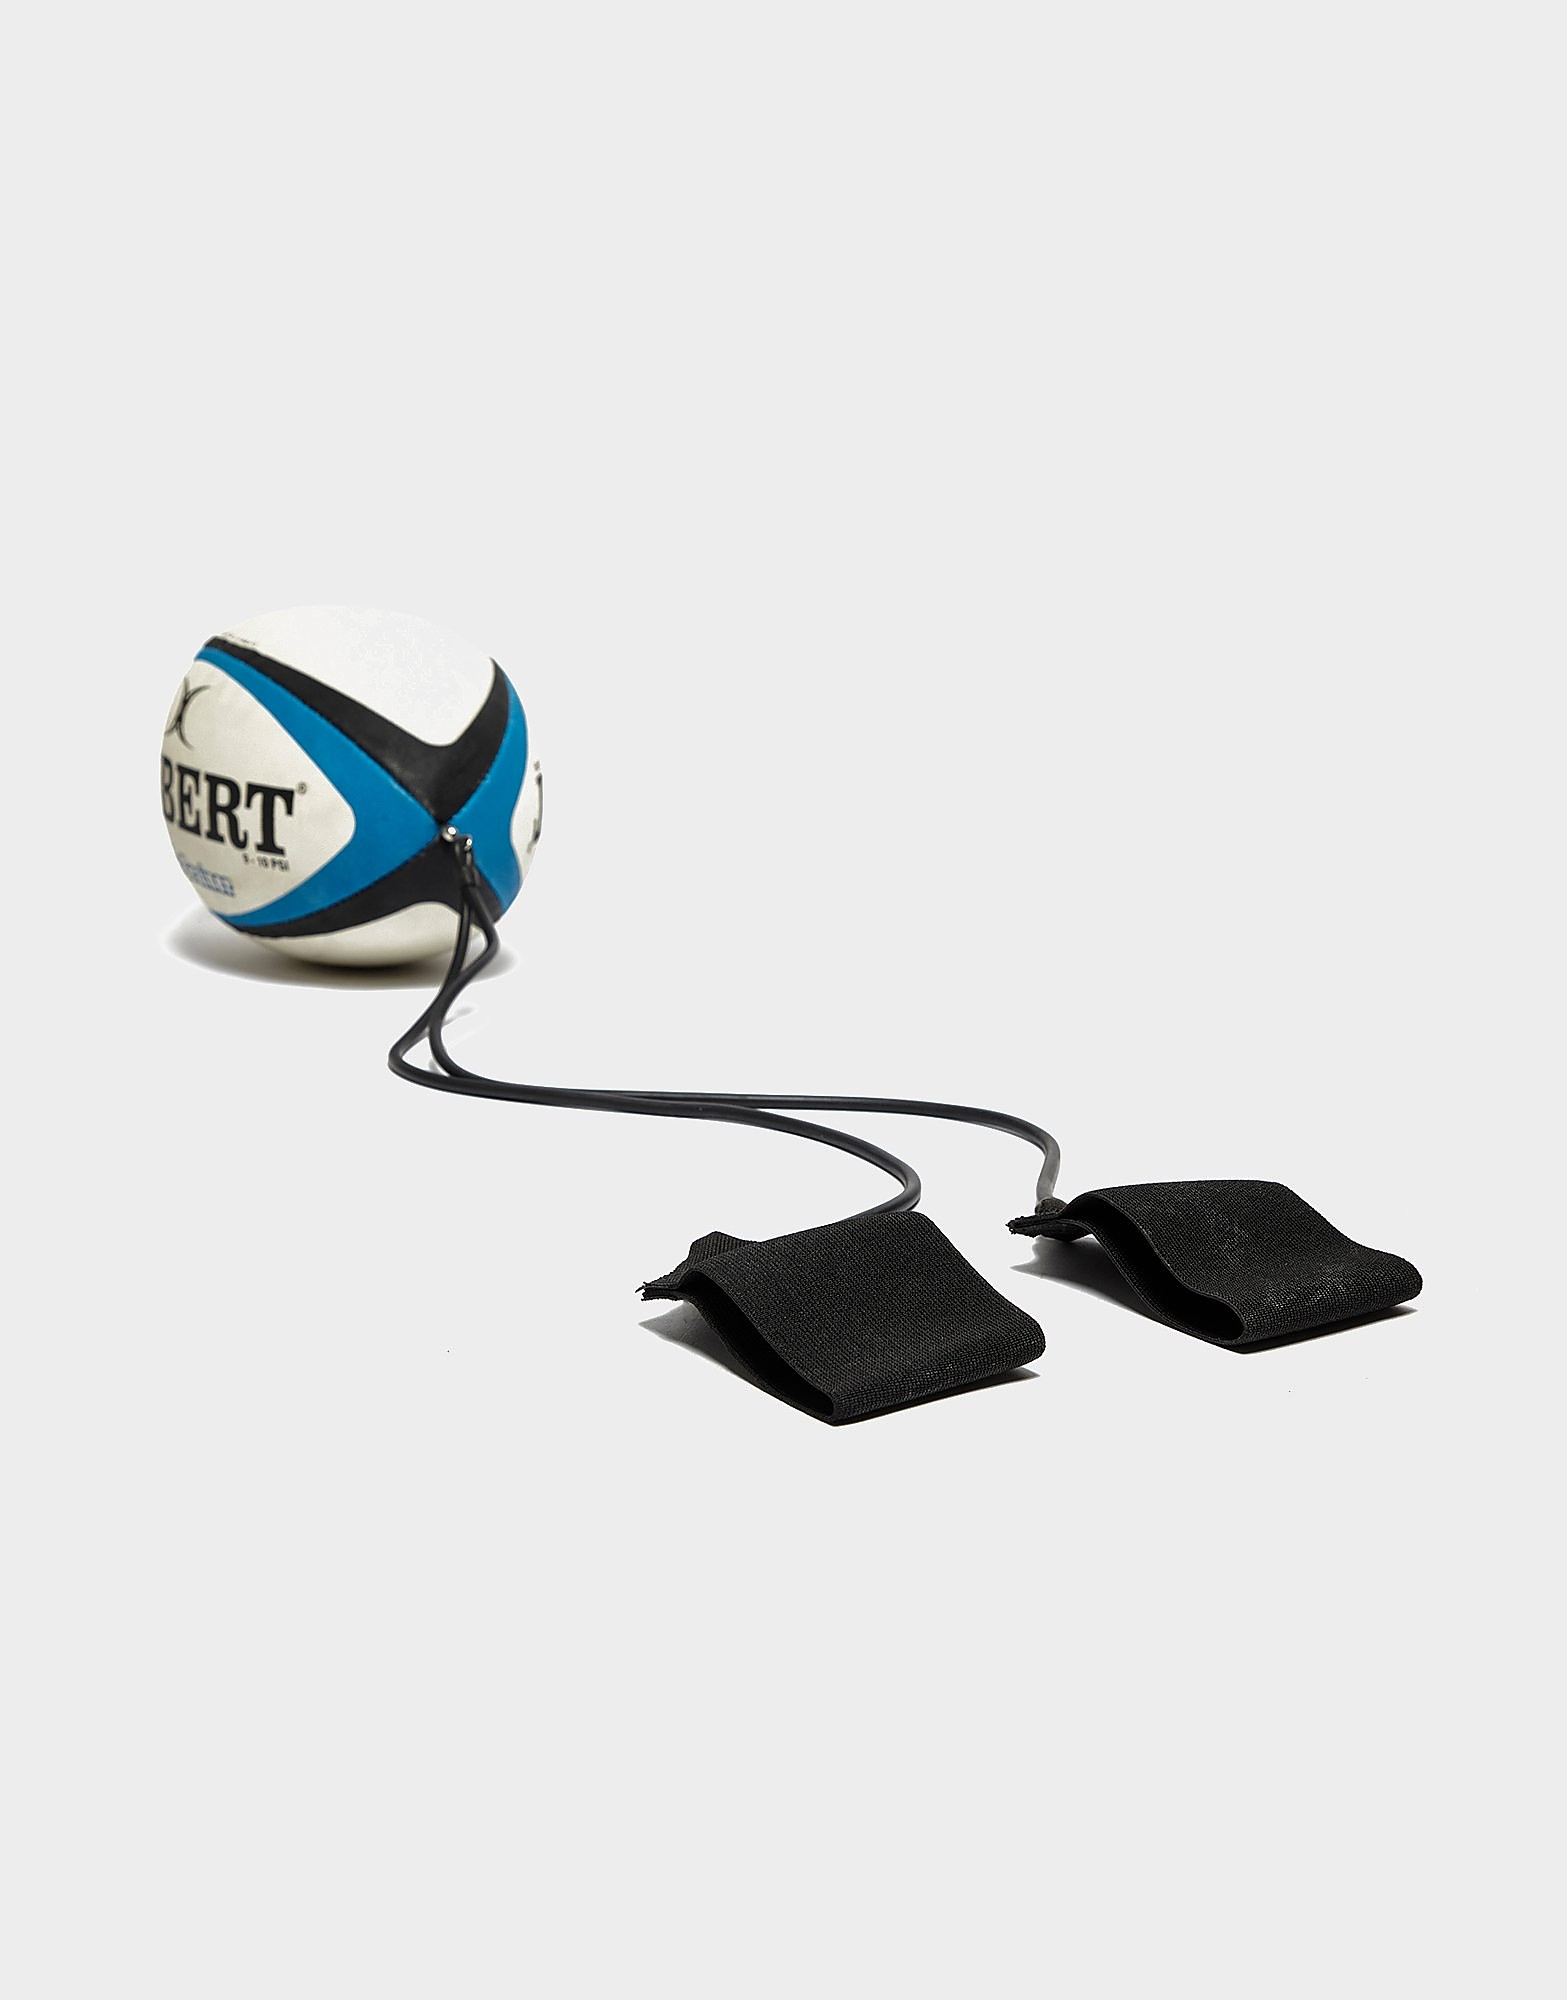 Gilbert Reflex Catch Trainer